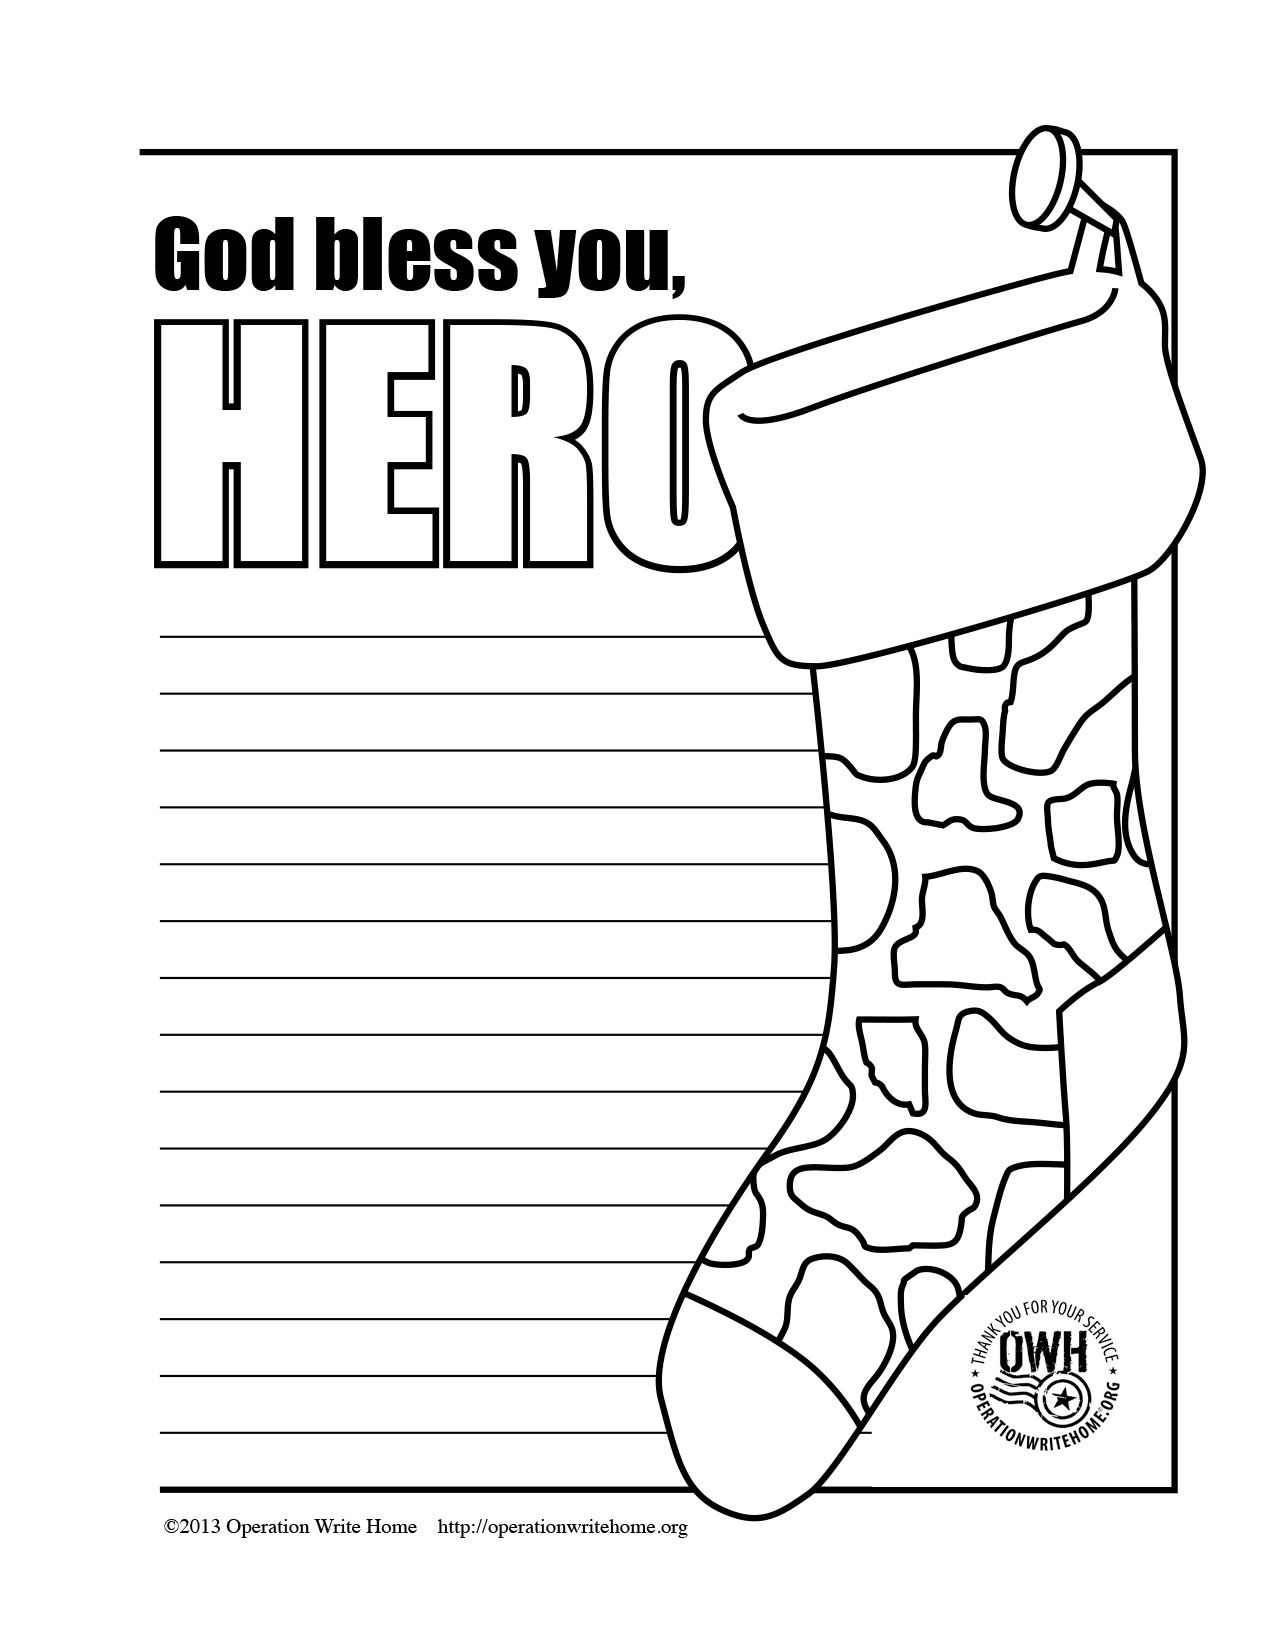 31+ D day coloring pages ideas